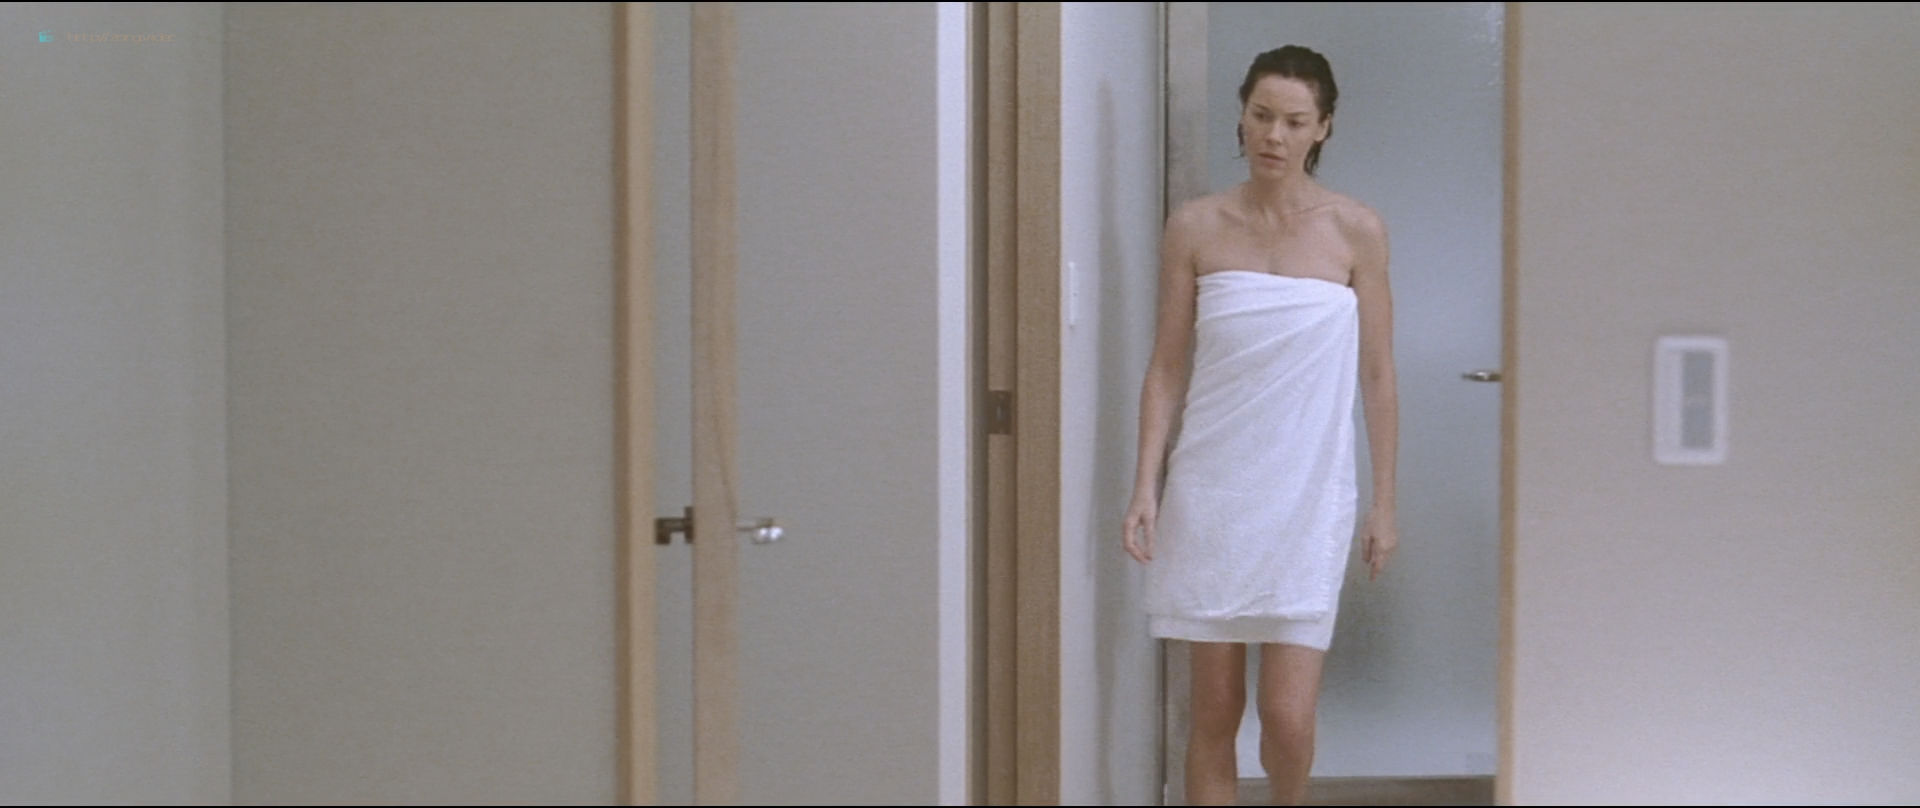 Connie Nielsen nude and Chloë Sevigny butt - Demonlover (2002) HD 1080p BluRay (15)